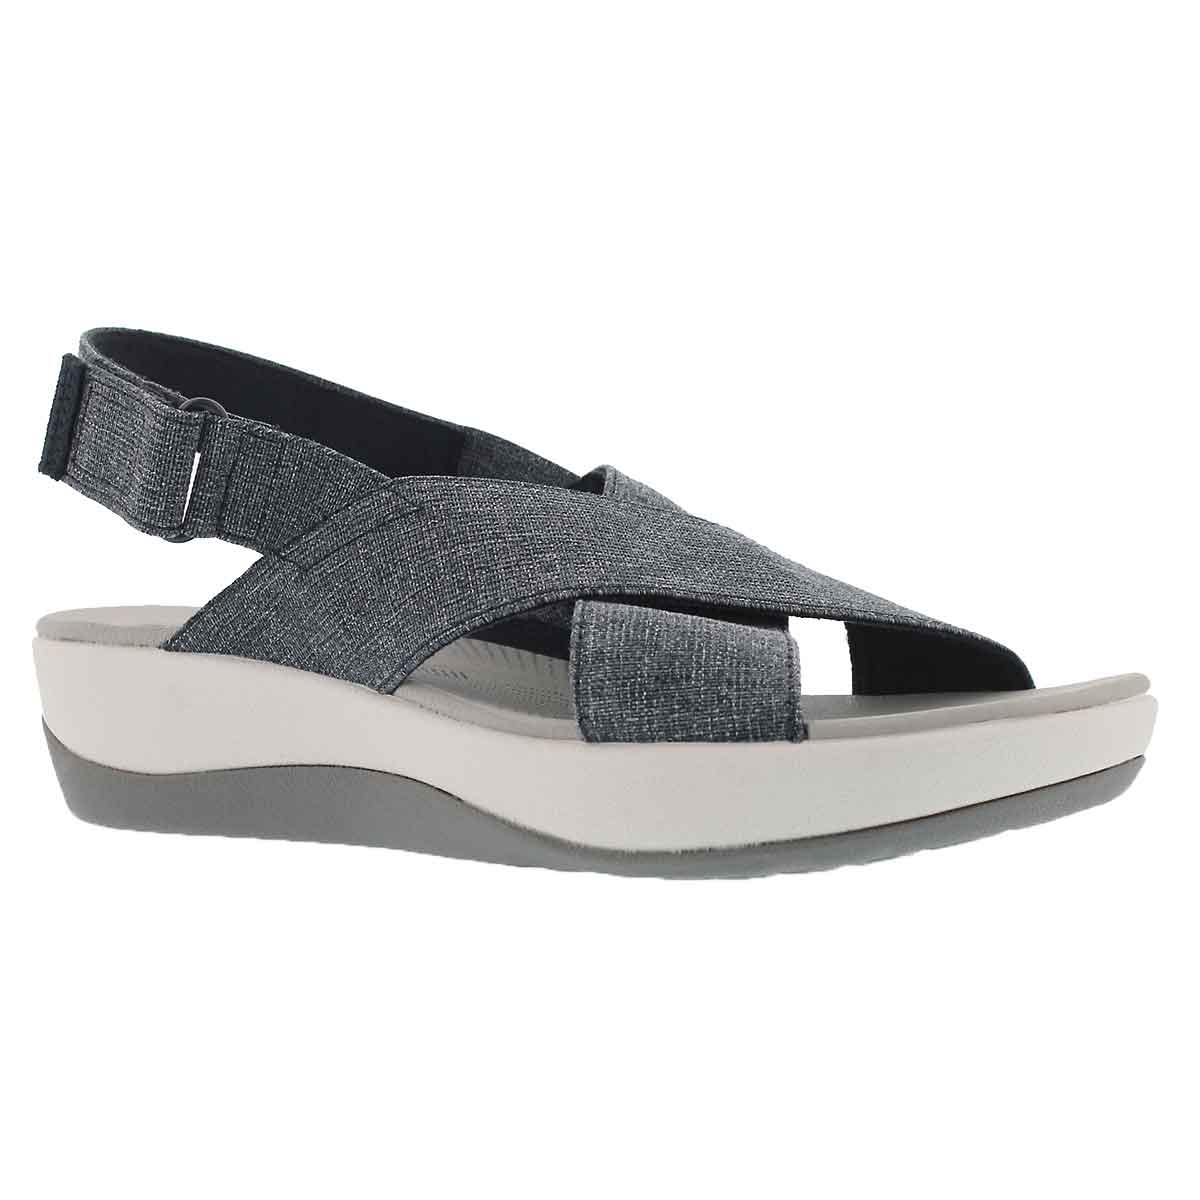 Women's ARLA KAYDIN navy/white wedge sandal